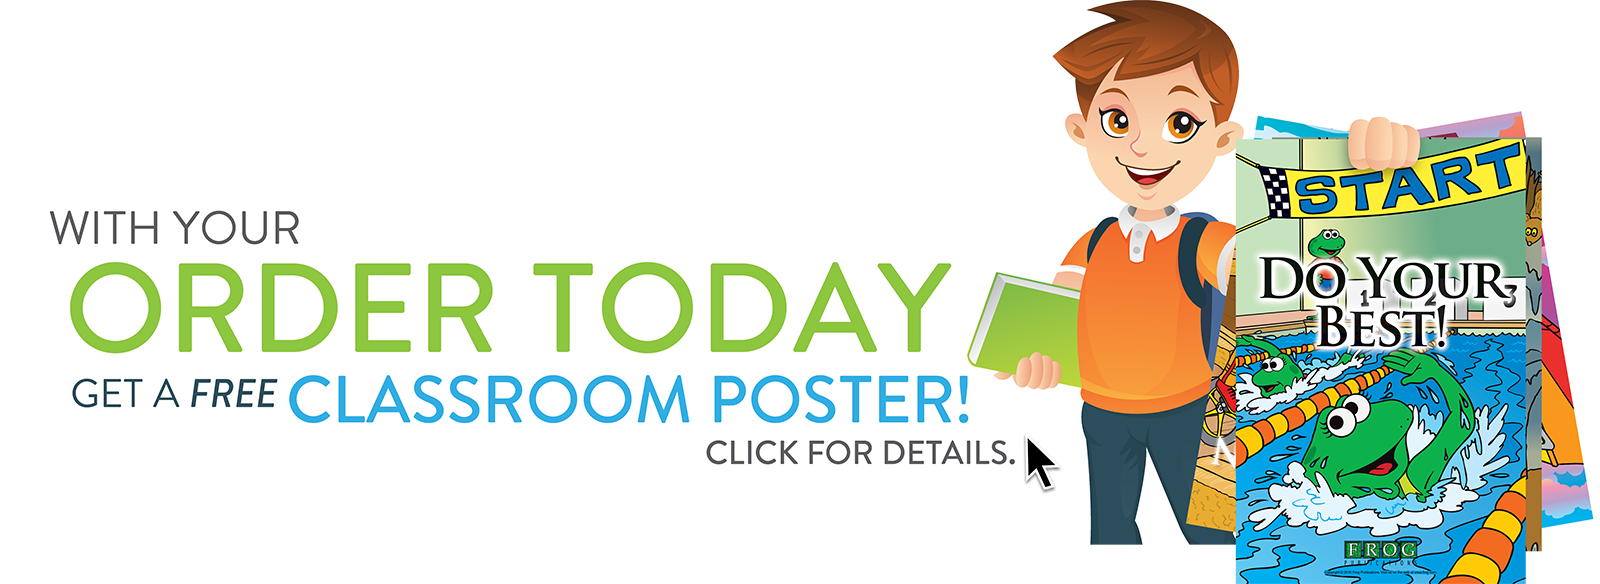 Get a FREE Classroom Poster when you order today!